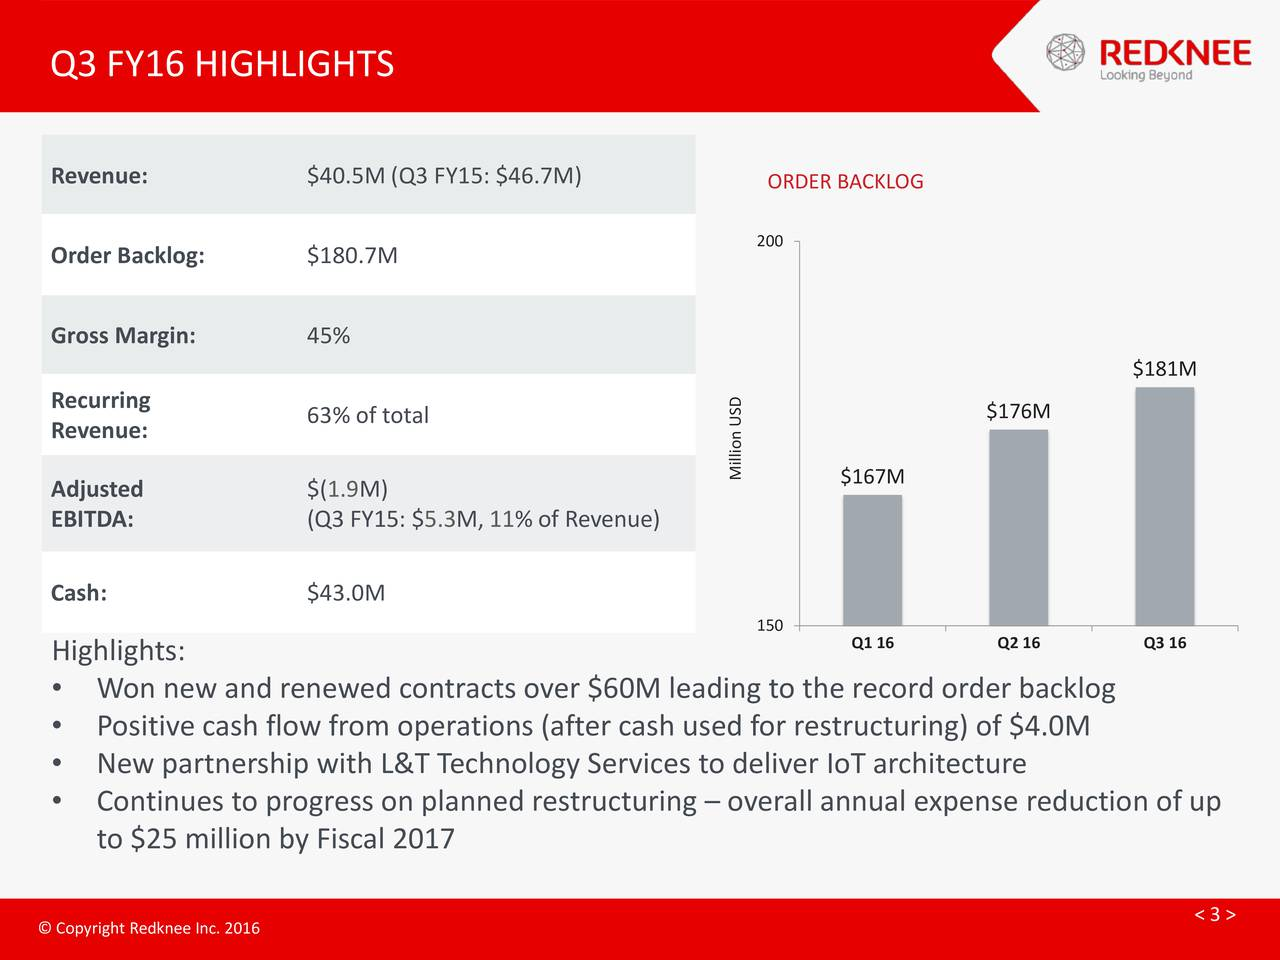 Revenue: $40.5M (Q3 FY15: $46.7M) ORDER BACKLOG 200 Order Backlog: $180.7M Gross Margin: 45% $181M Recurring 63% of total $176M Revenue: Adjusted $(1.9M) Million US$167M EBITDA: (Q3 FY15: $5.3M, 11% of Revenue) Cash: $43.0M 150 Q1 16 Q2 16 Q3 16 Highlights: Won new and renewed contracts over $60M leading to the record order backlog Positive cash flow from operations (after cash used for restructuring) of $4.0M New partnership with L&T Technology Services to deliver IoT architecture Continues to progress on planned restructuring  overall annual expense reduction of up to $25 million by Fiscal 2017 < 3 > CopyihtRedkneeIn.2016